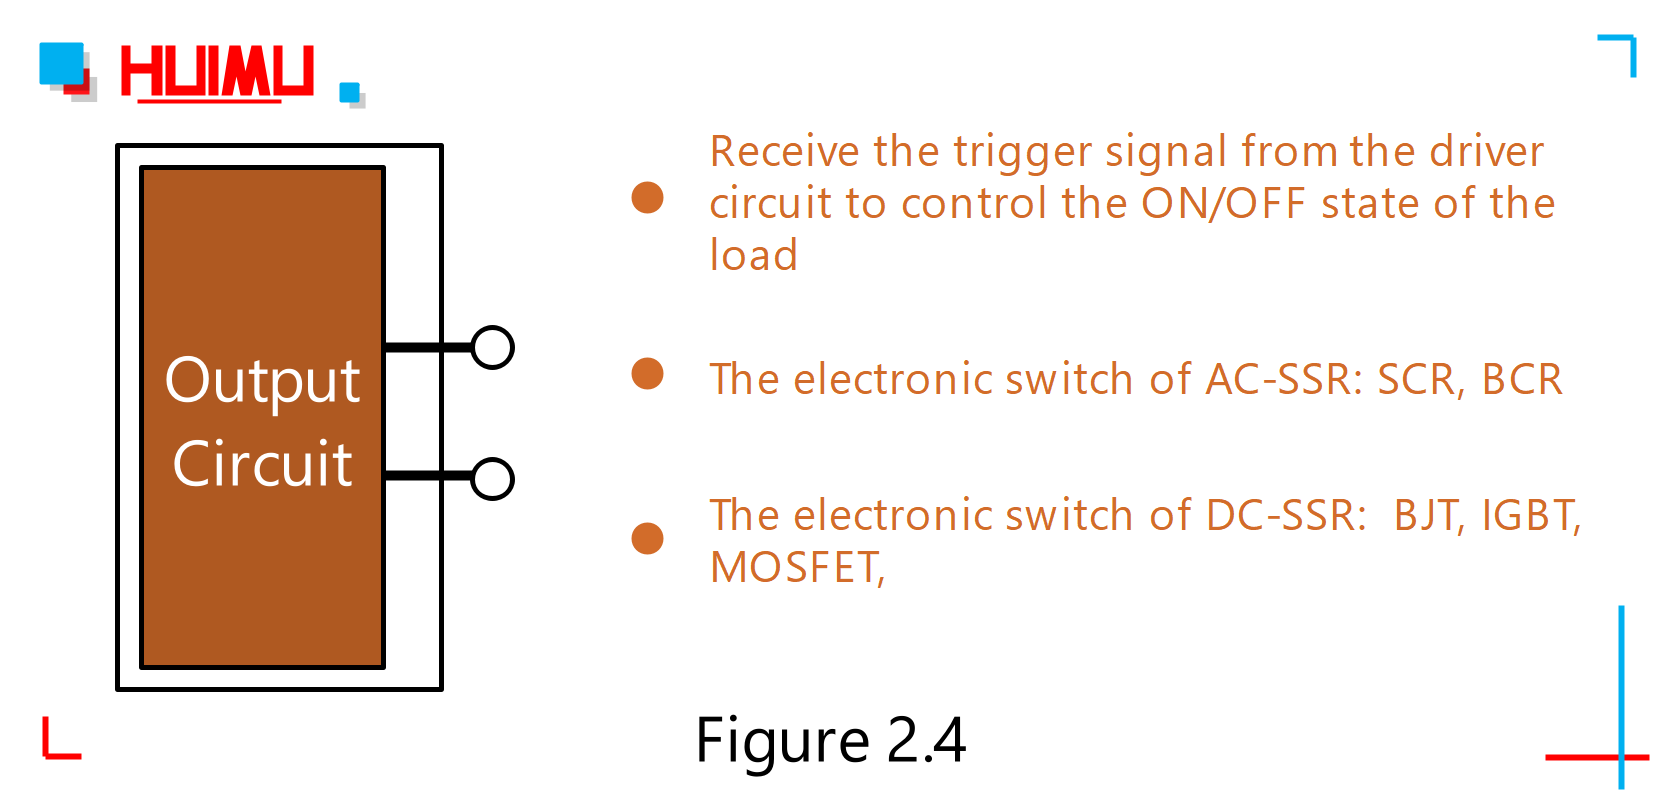 The output circuit of the solid-state relay is controlled by a trigger signal to enable on/off switching of the load power supplies.